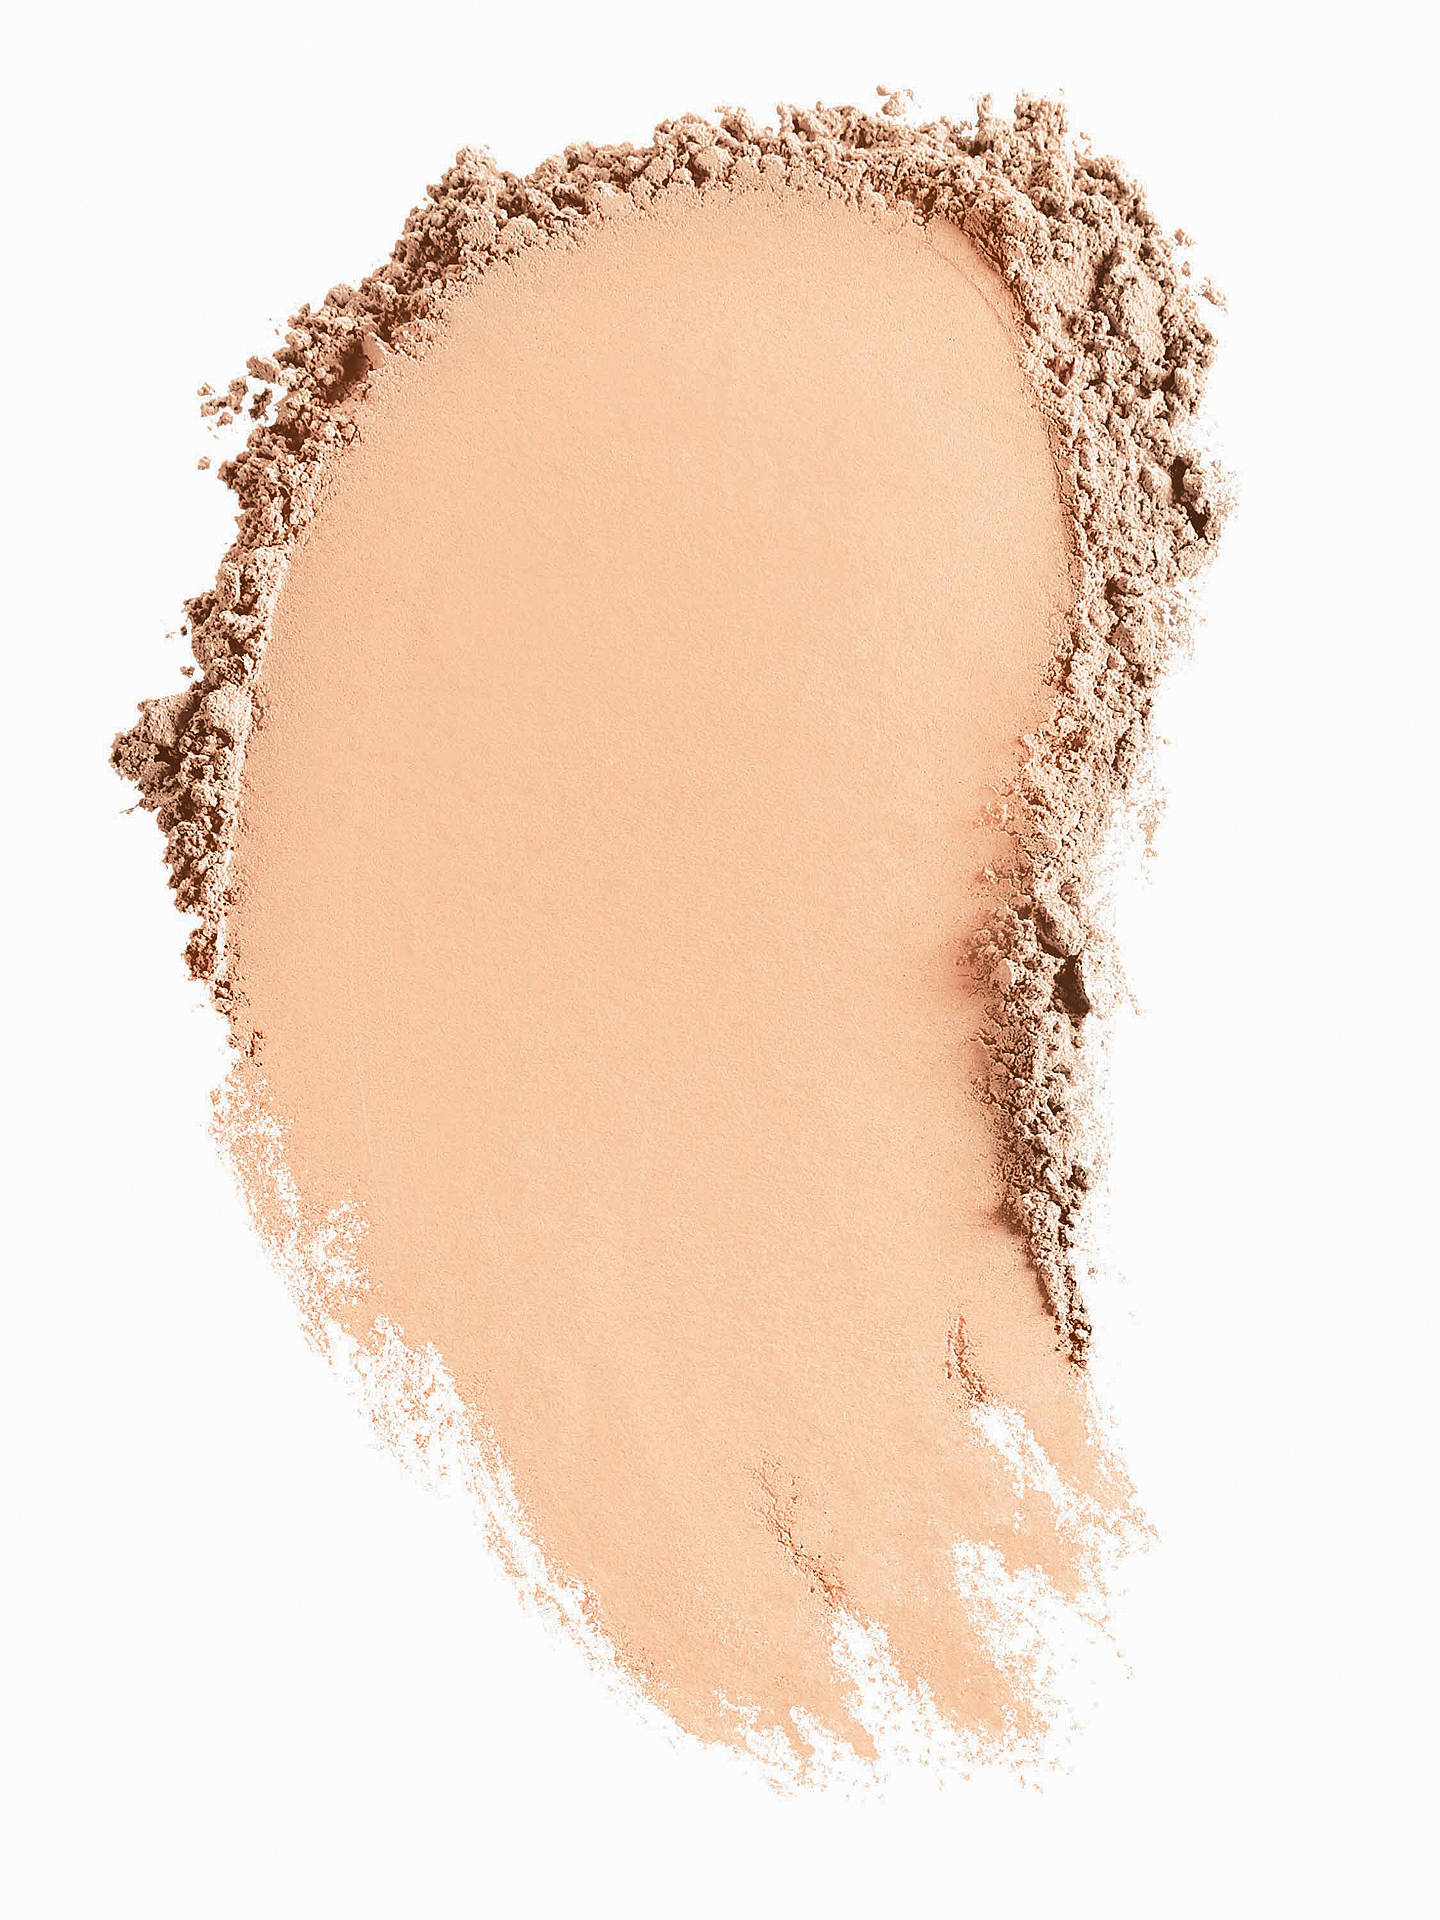 BuybareMinerals BlemishRescue™ Skin-Clearing Loose Powder Foundation, Fair 1C Online at johnlewis.com